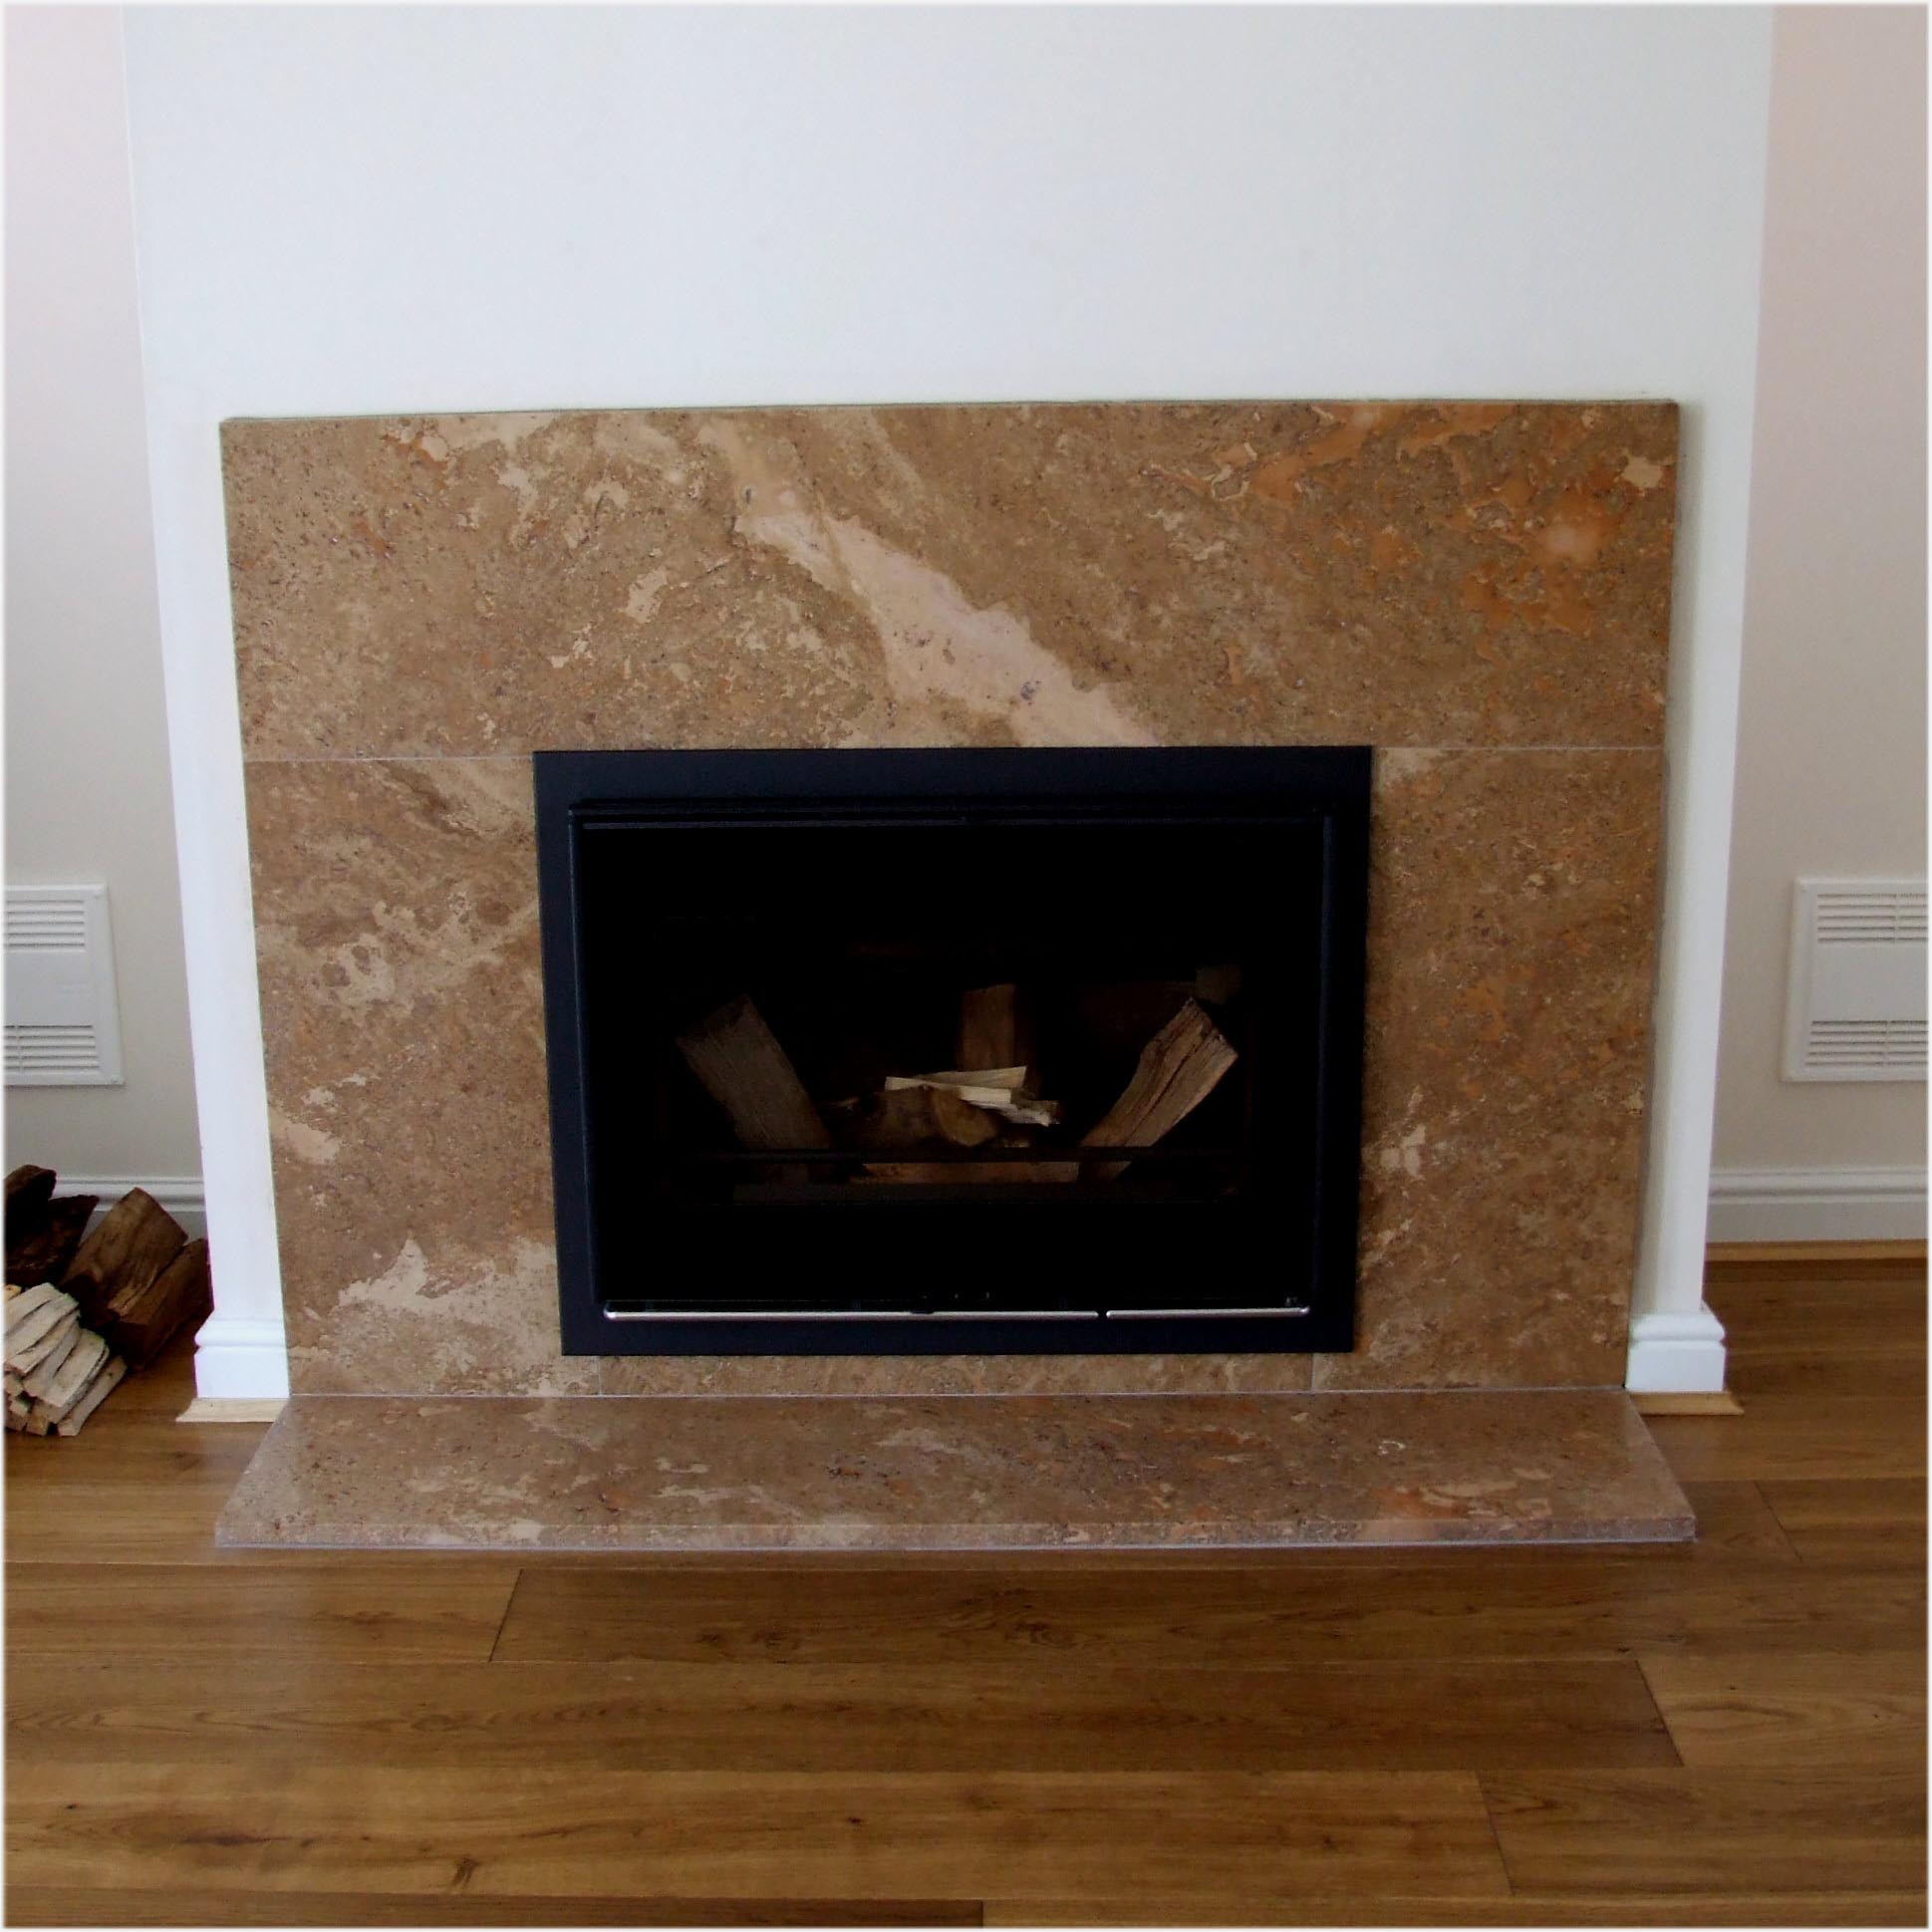 Fireplace Hearth Stone Tiles Fireplace Designs